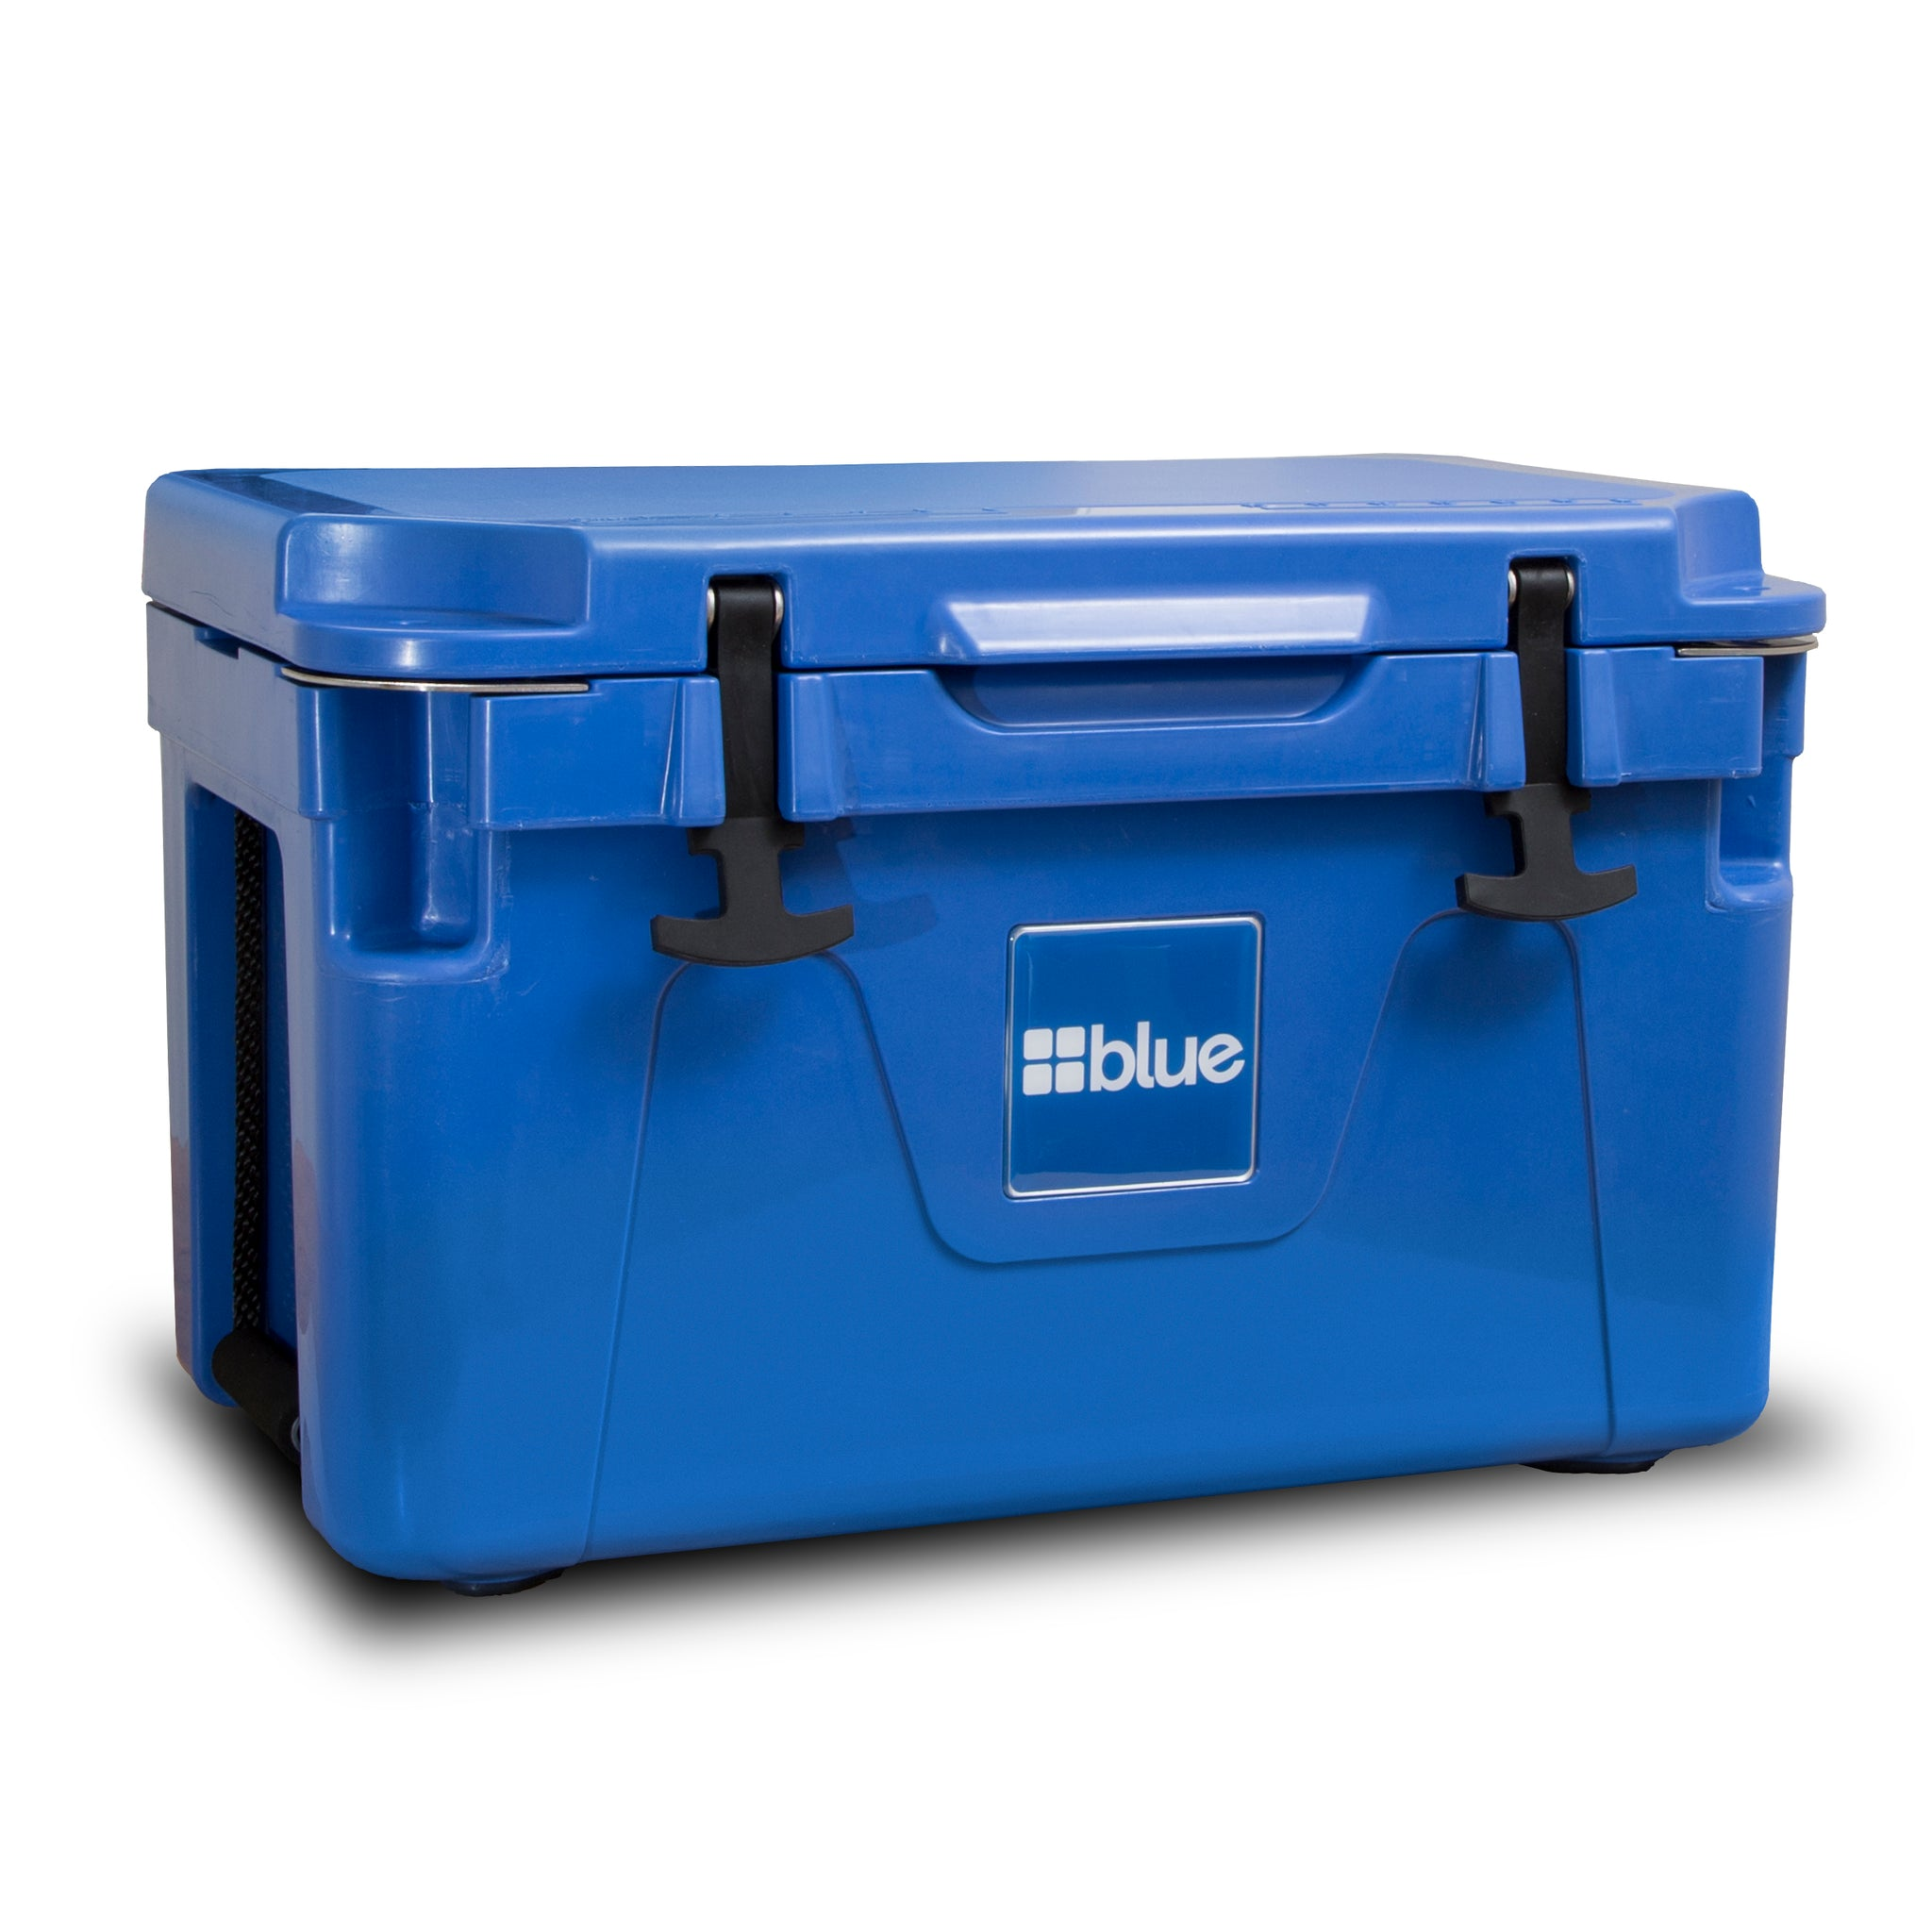 25 Liter Companion Rotomolded Cooler - Blue Coolers